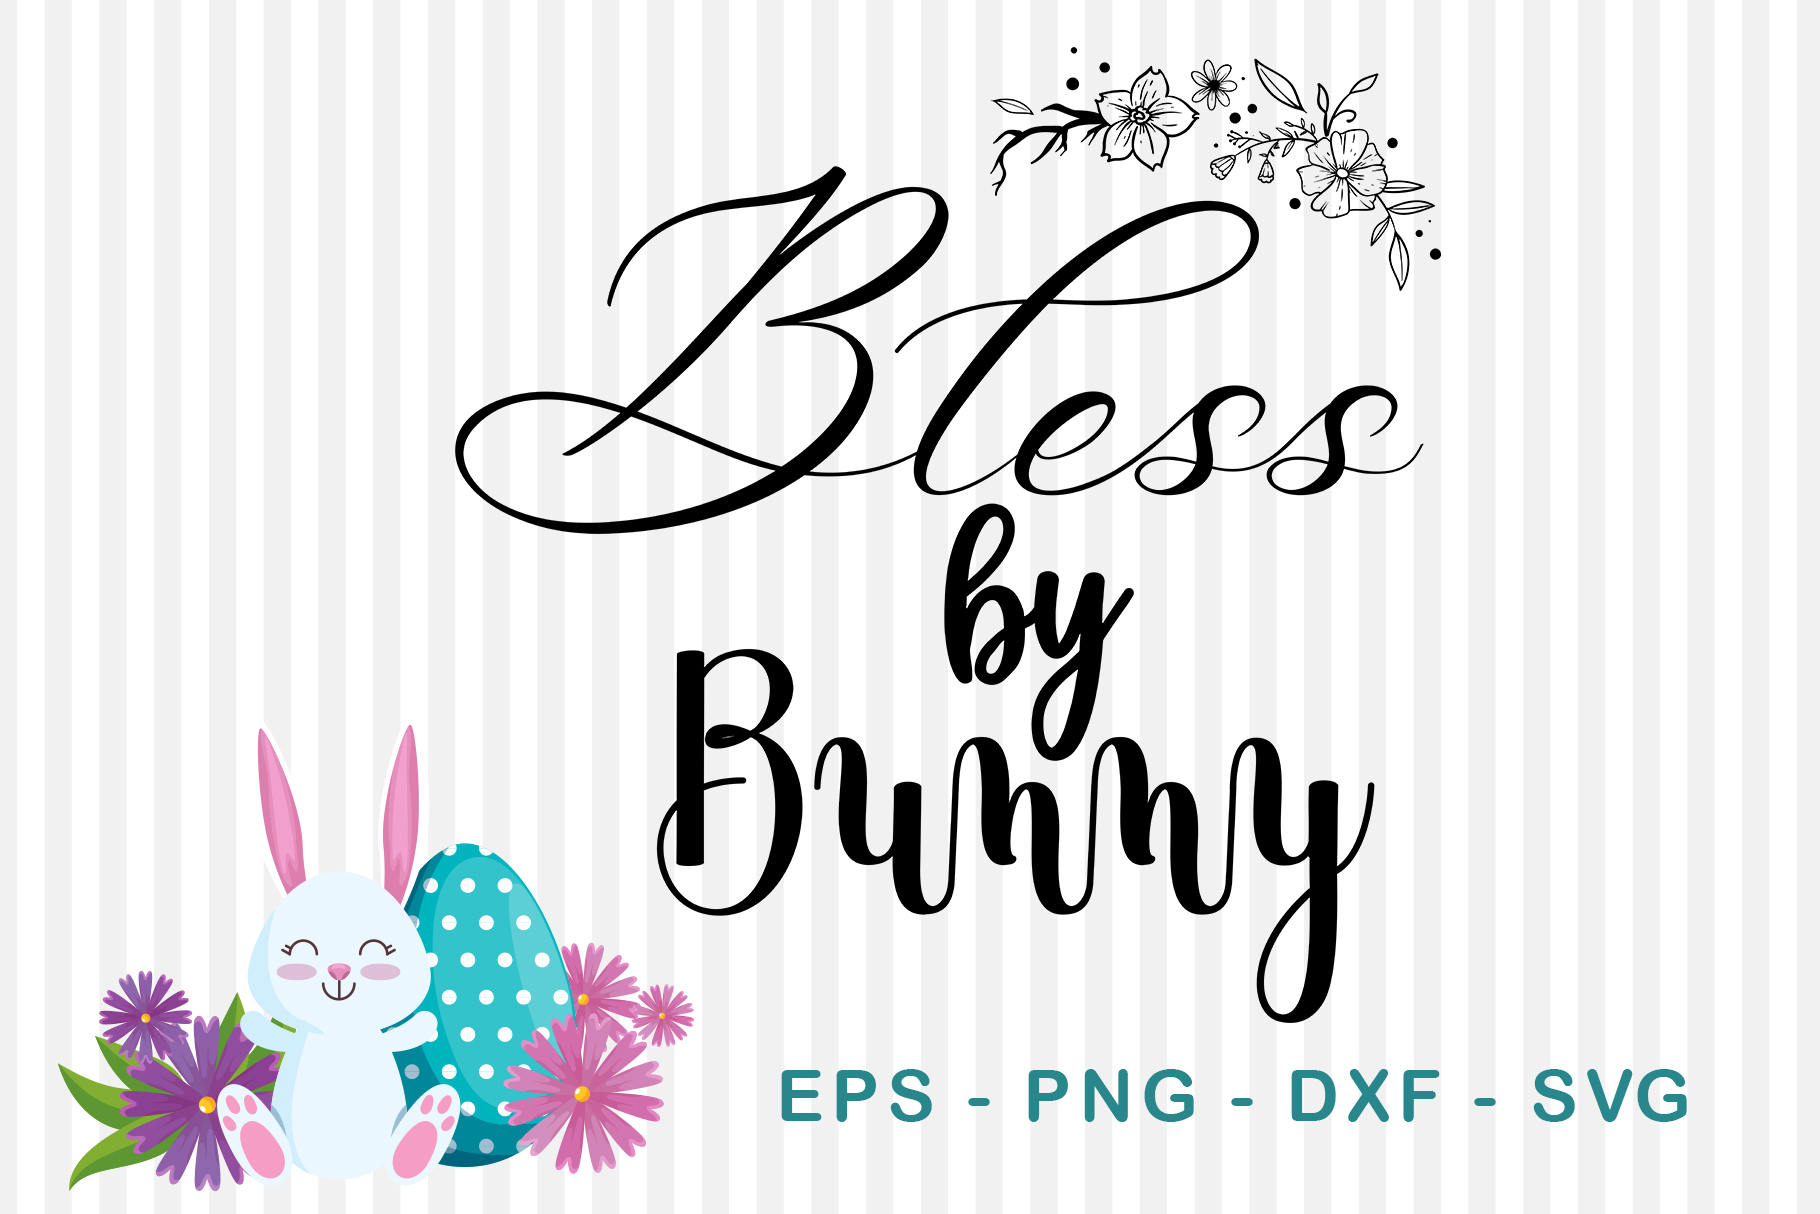 Download Free Bless By Bunny Graphic By Sharon Dmstd Creative Fabrica for Cricut Explore, Silhouette and other cutting machines.